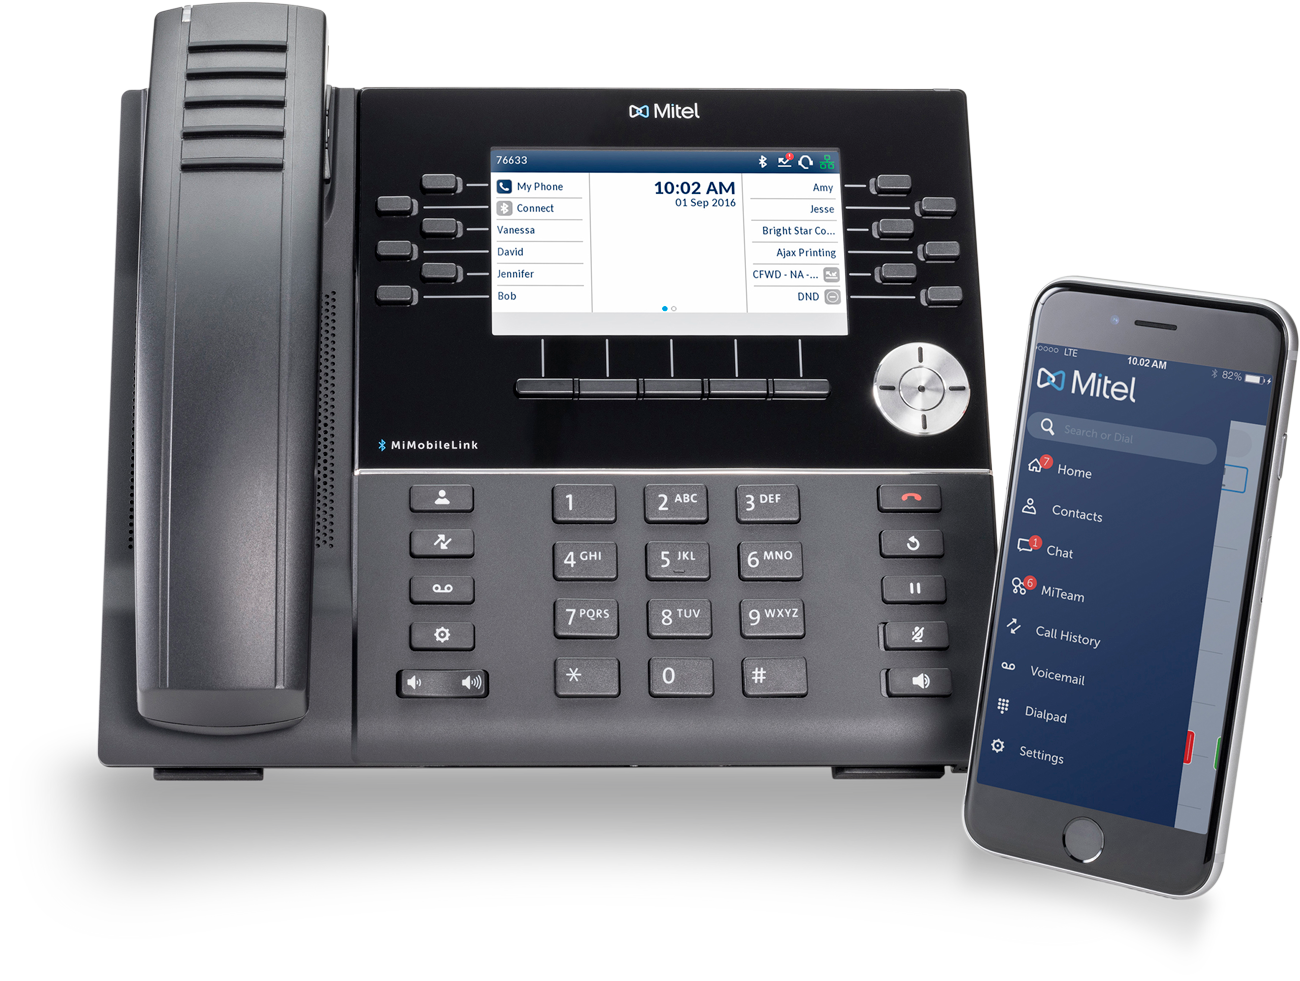 Mitel 6930 handset with iPhone